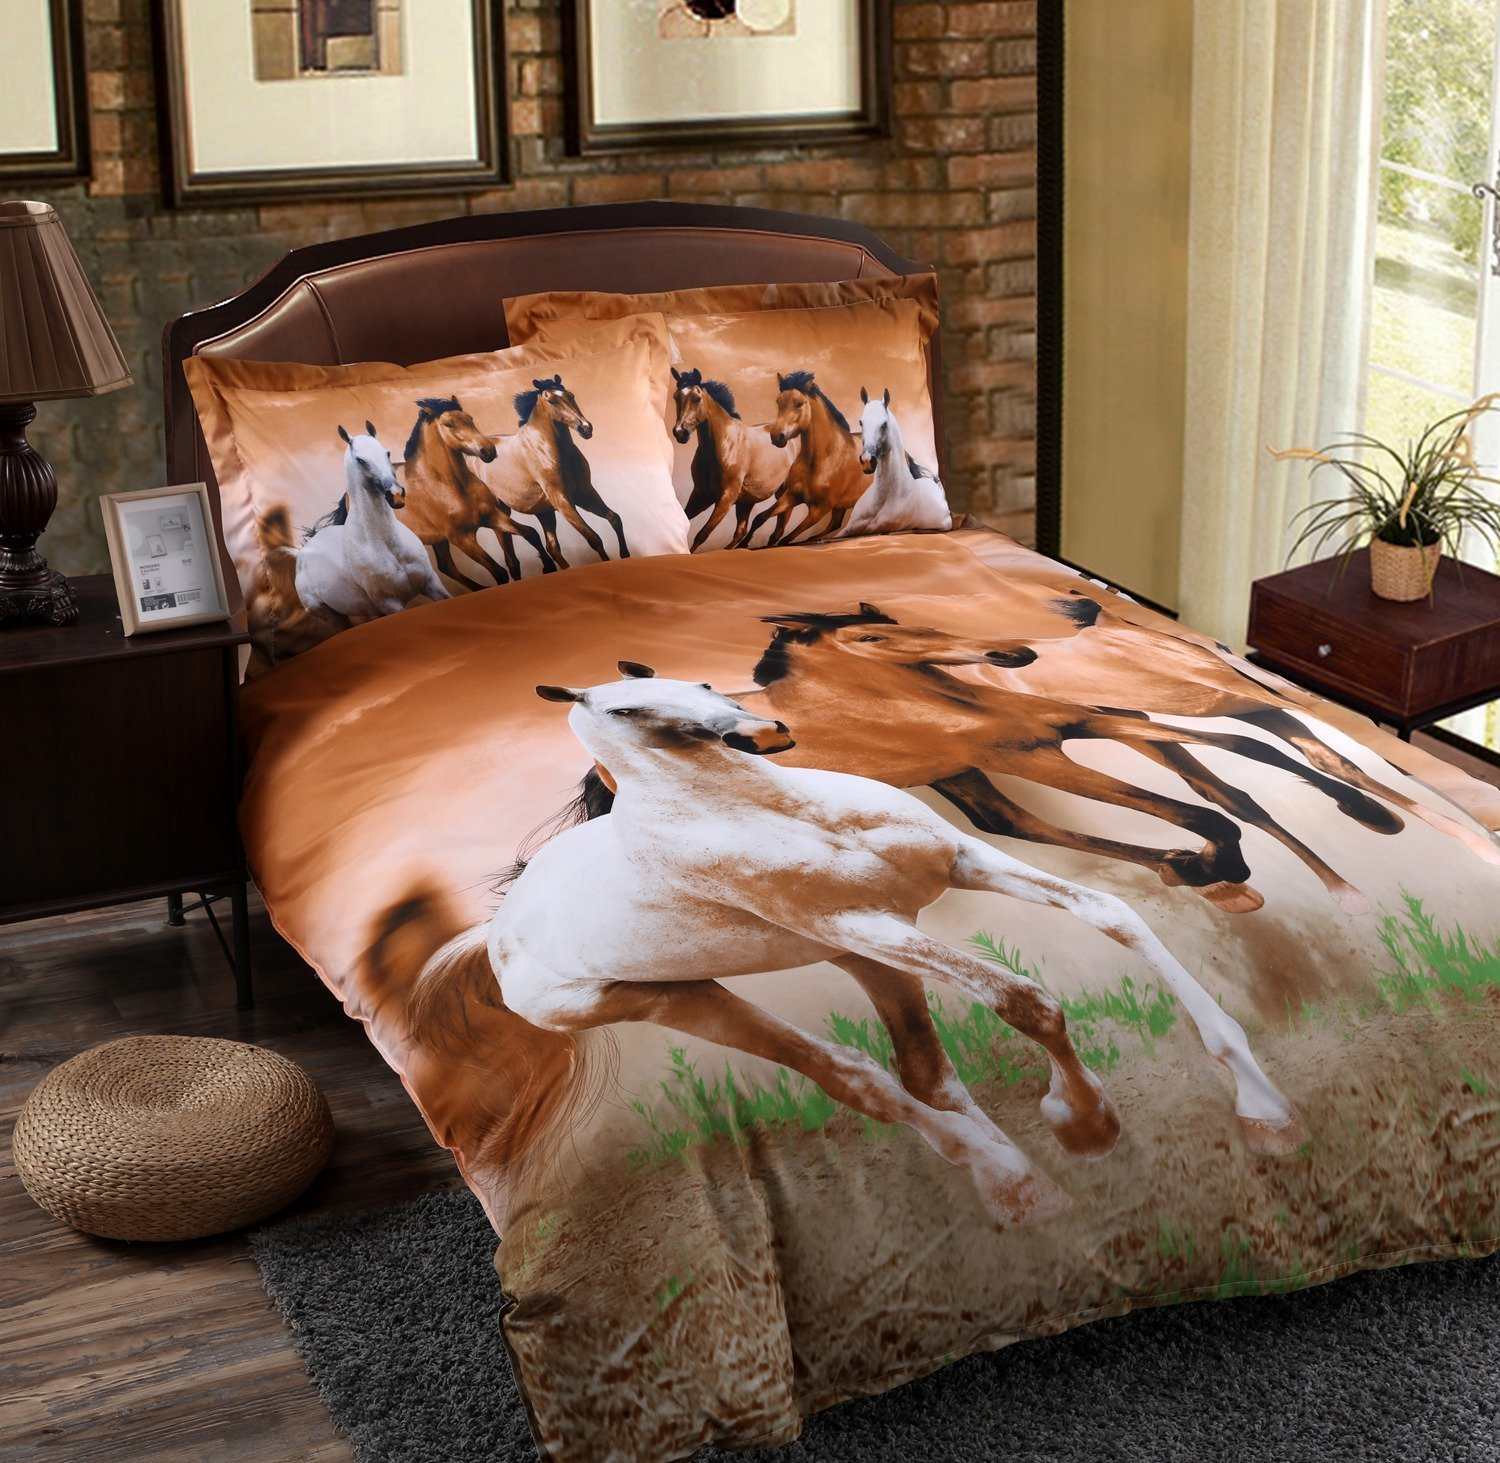 Buy Duvet Cover Babycare Pro Galloping Horse Reactive Print Polyester 3d Duvet Cover Bedding Sets Twin Size 4 Pieces Comforter Not Included Twin